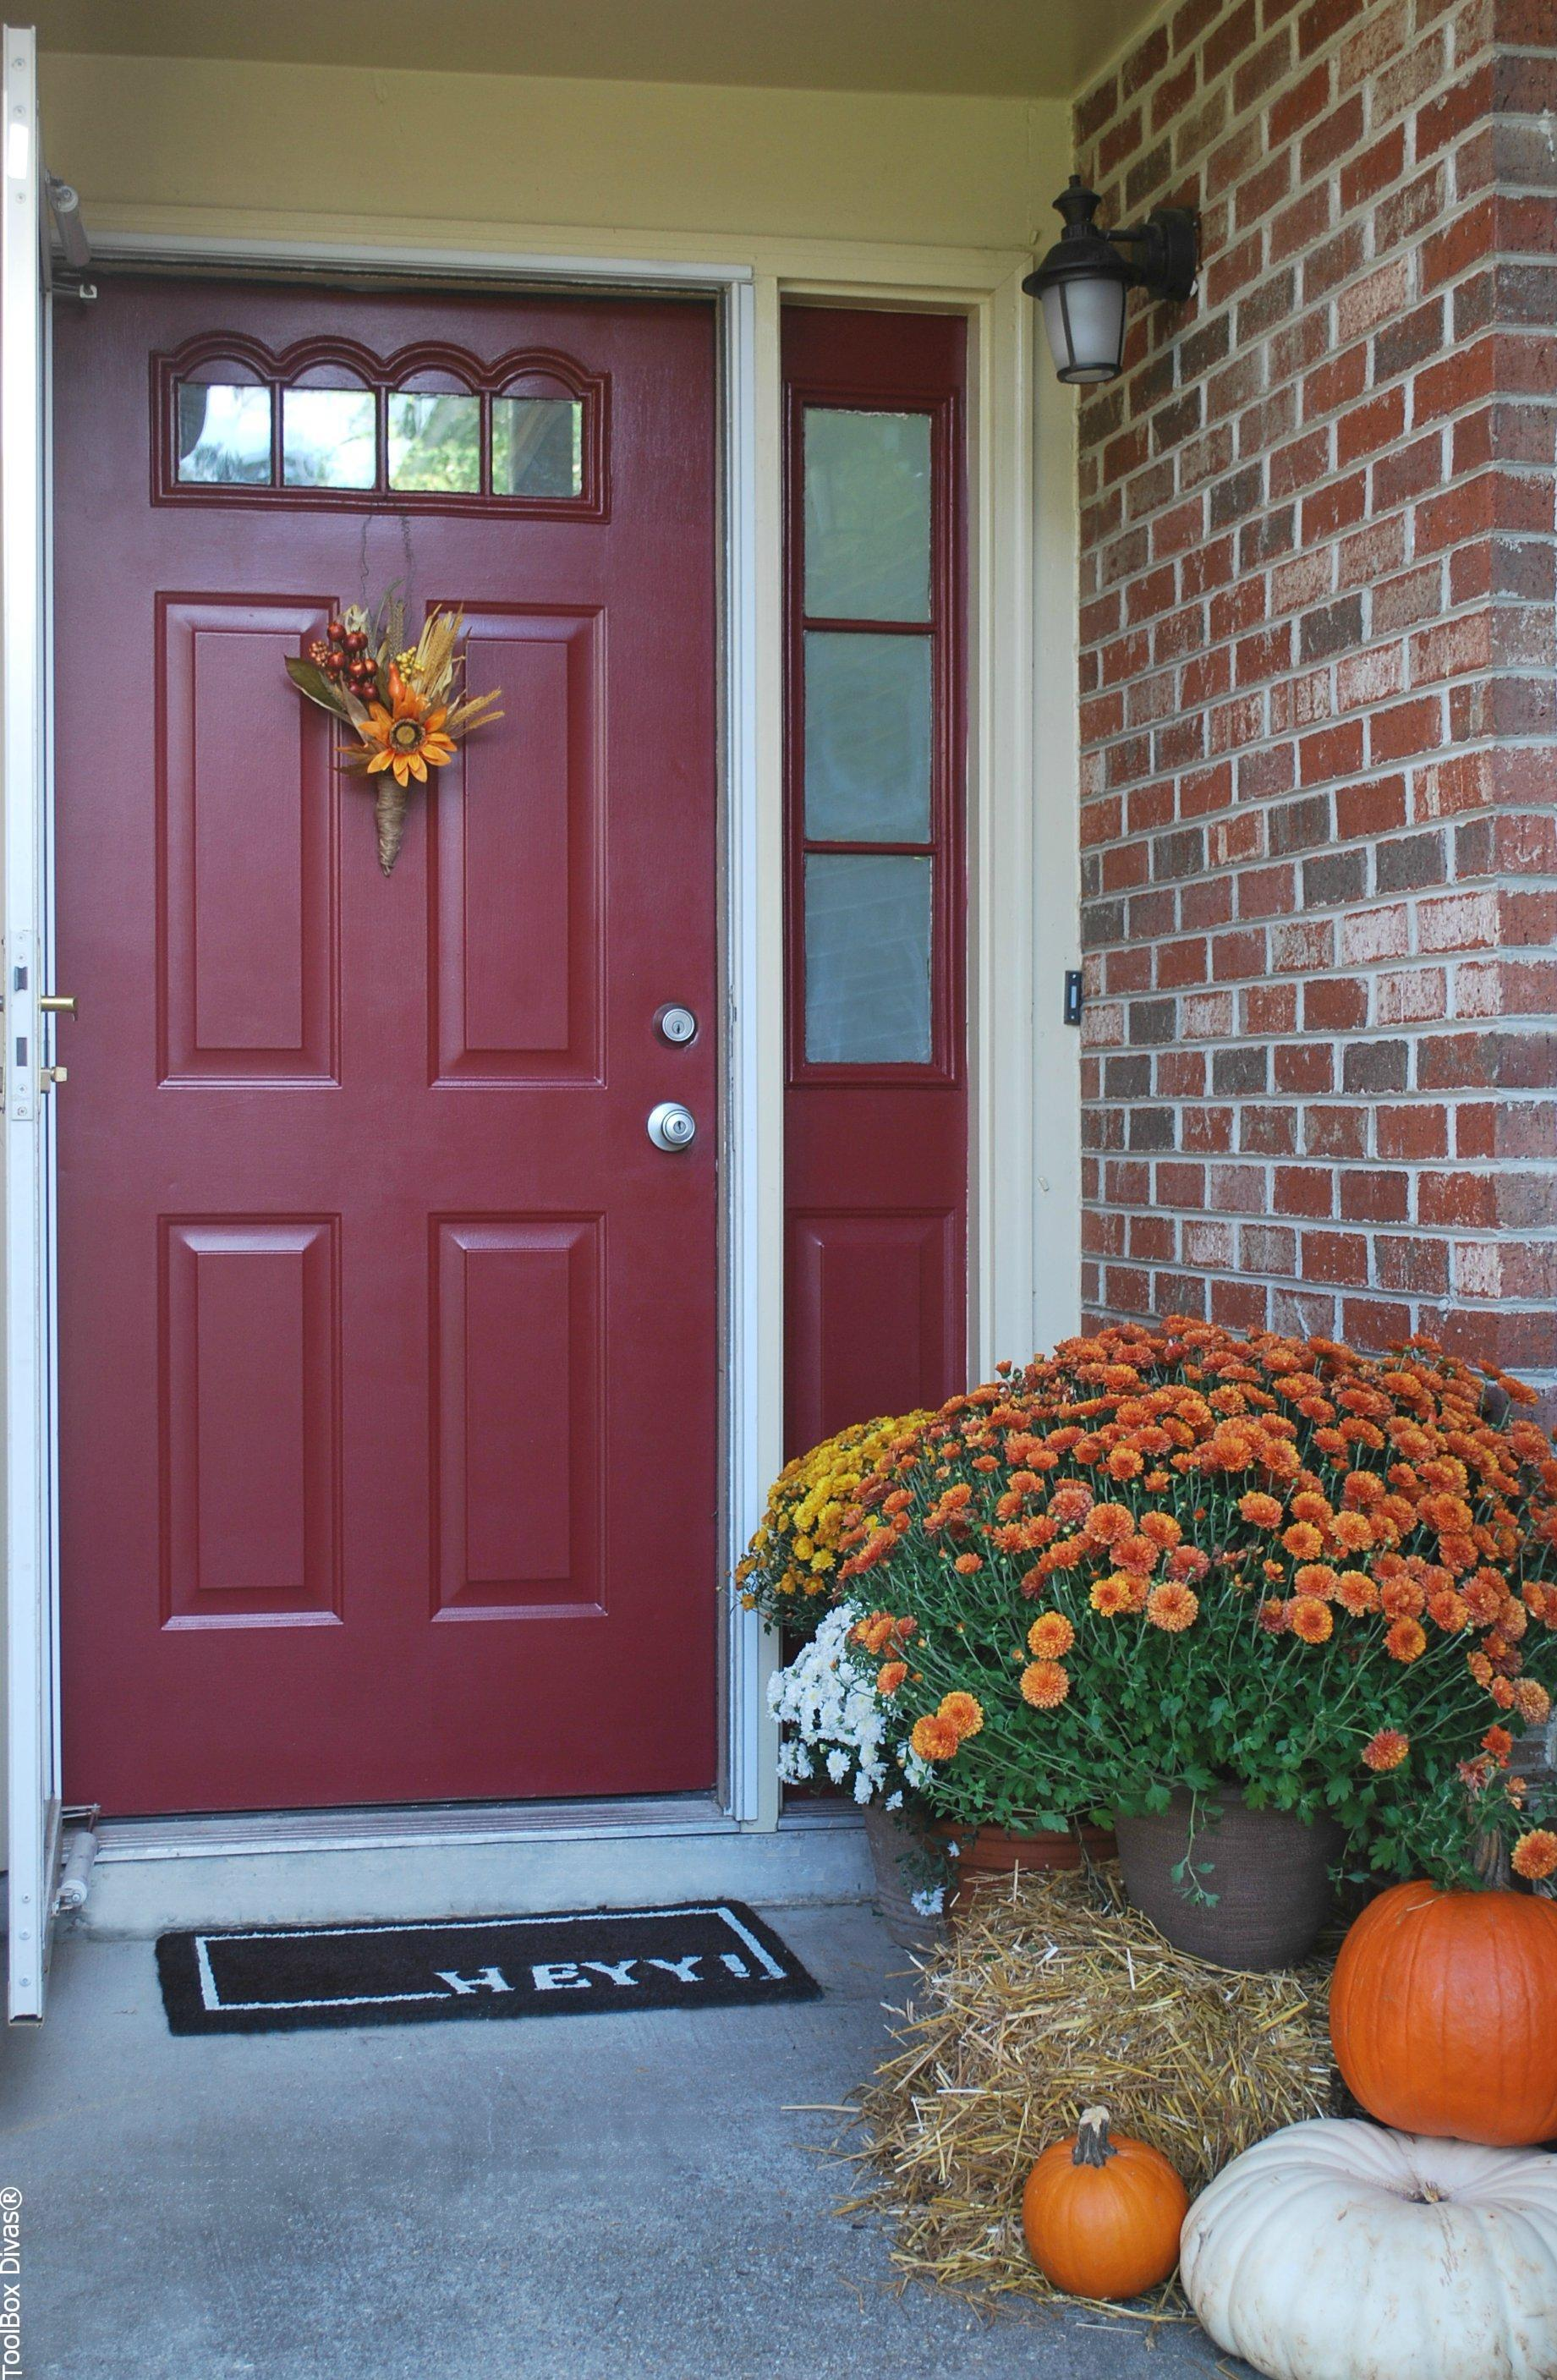 6 Affordable Ways to Create a Fall Inspired Front Door